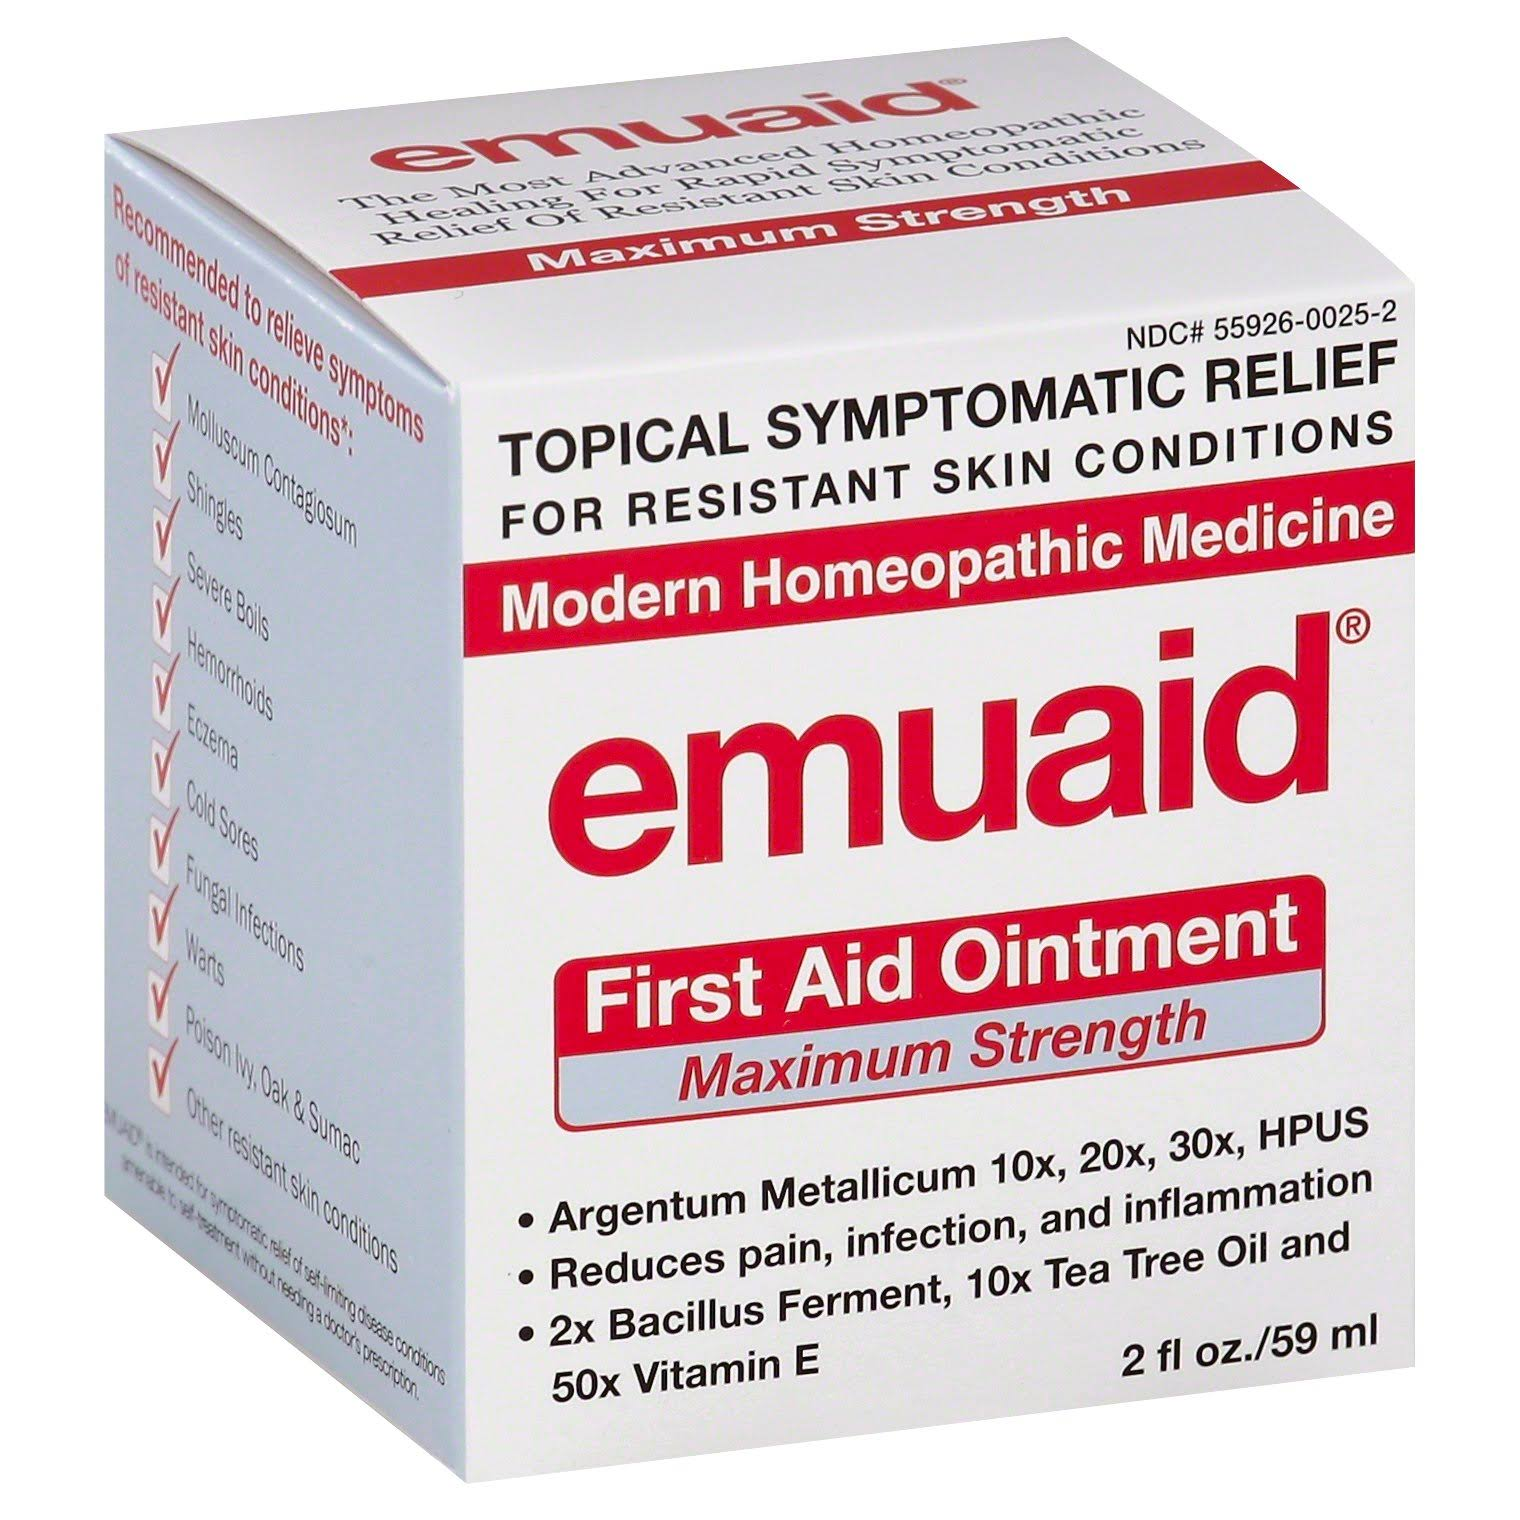 EmuaidMAX First Aid Ointment - 2oz